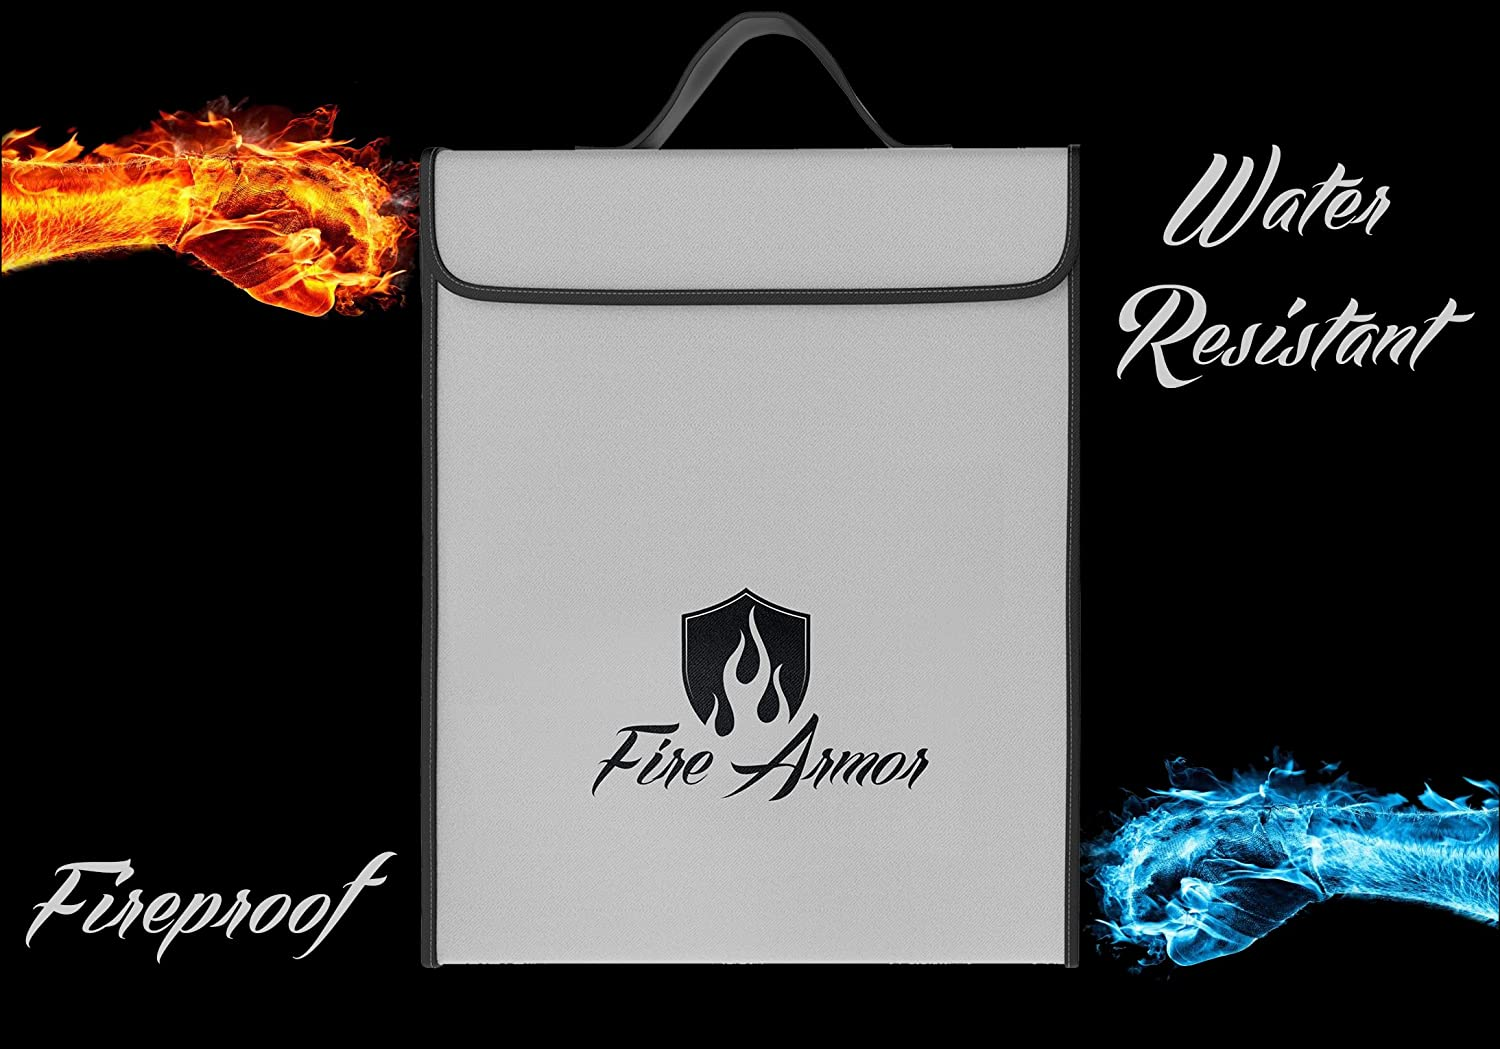 XXL No-Itch Zipper Closure Fire Armor -Double Layer- Fireproof Money Bag 16x12x3 Silicone Coated Fire Resistant Envelope Documents Pouch